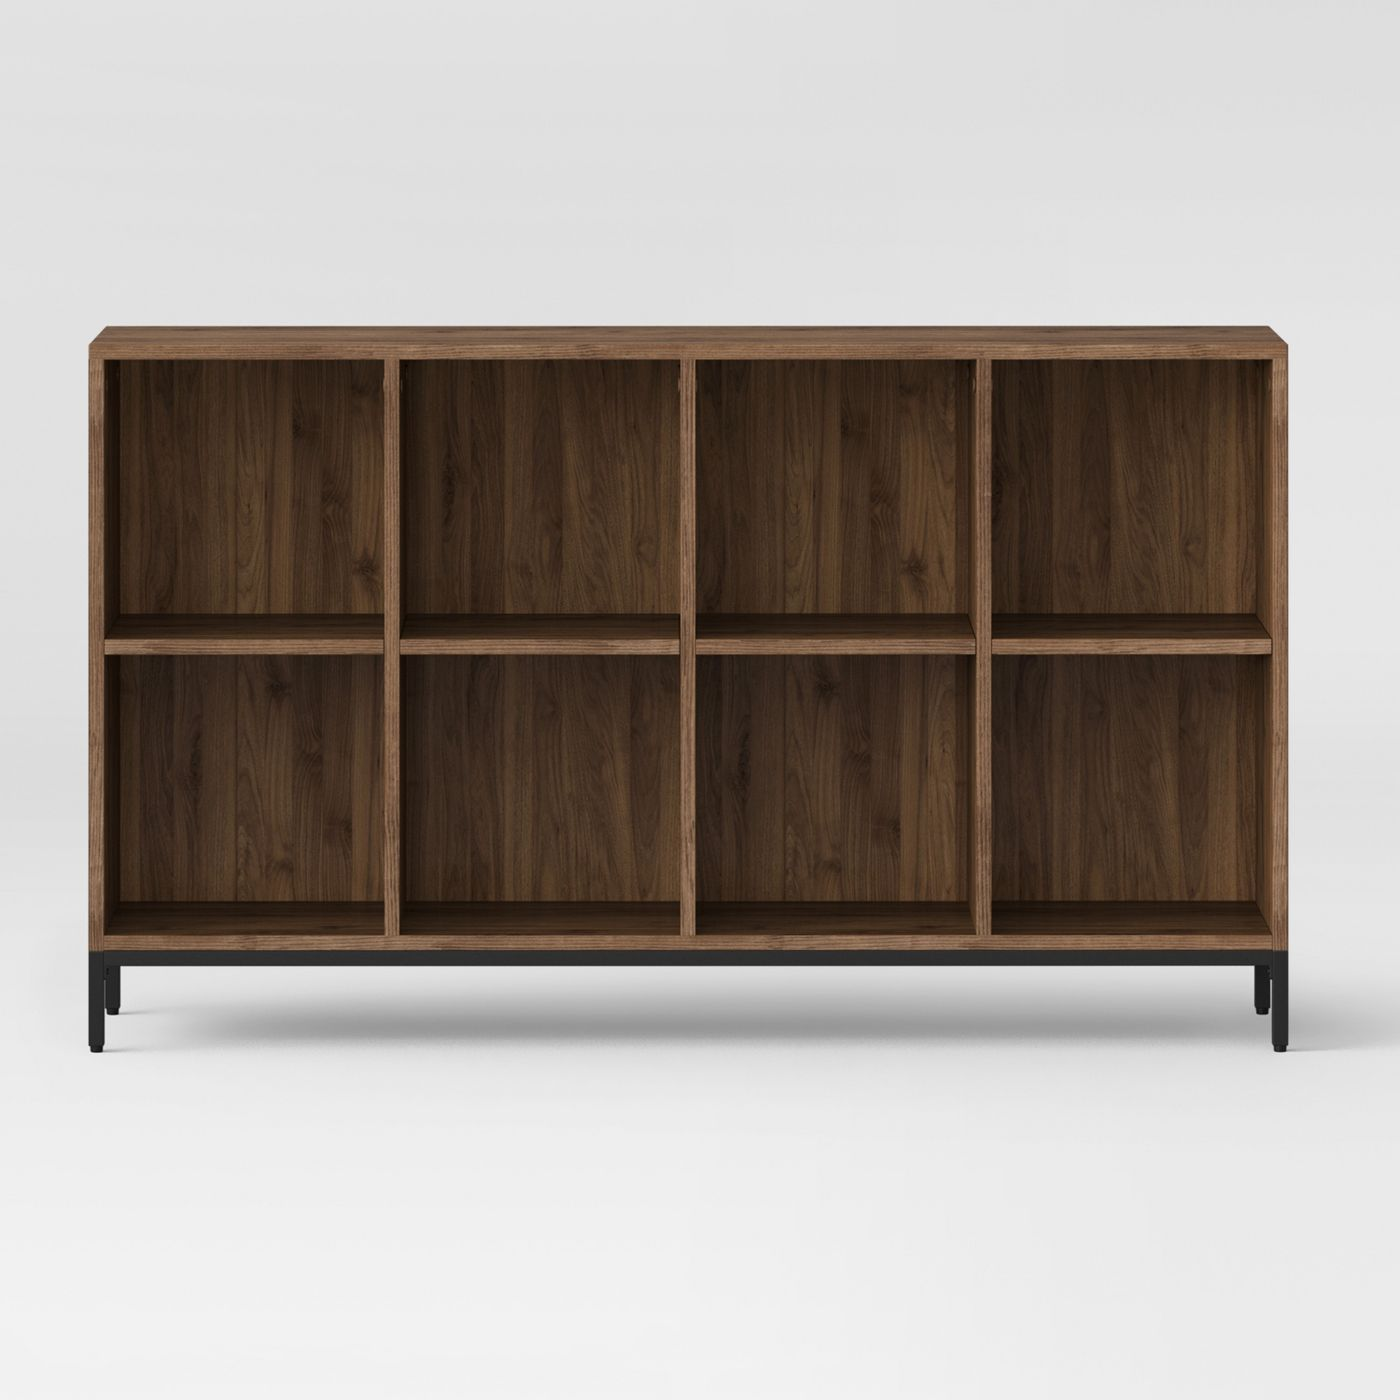 Loring 8 Cube Bookcase